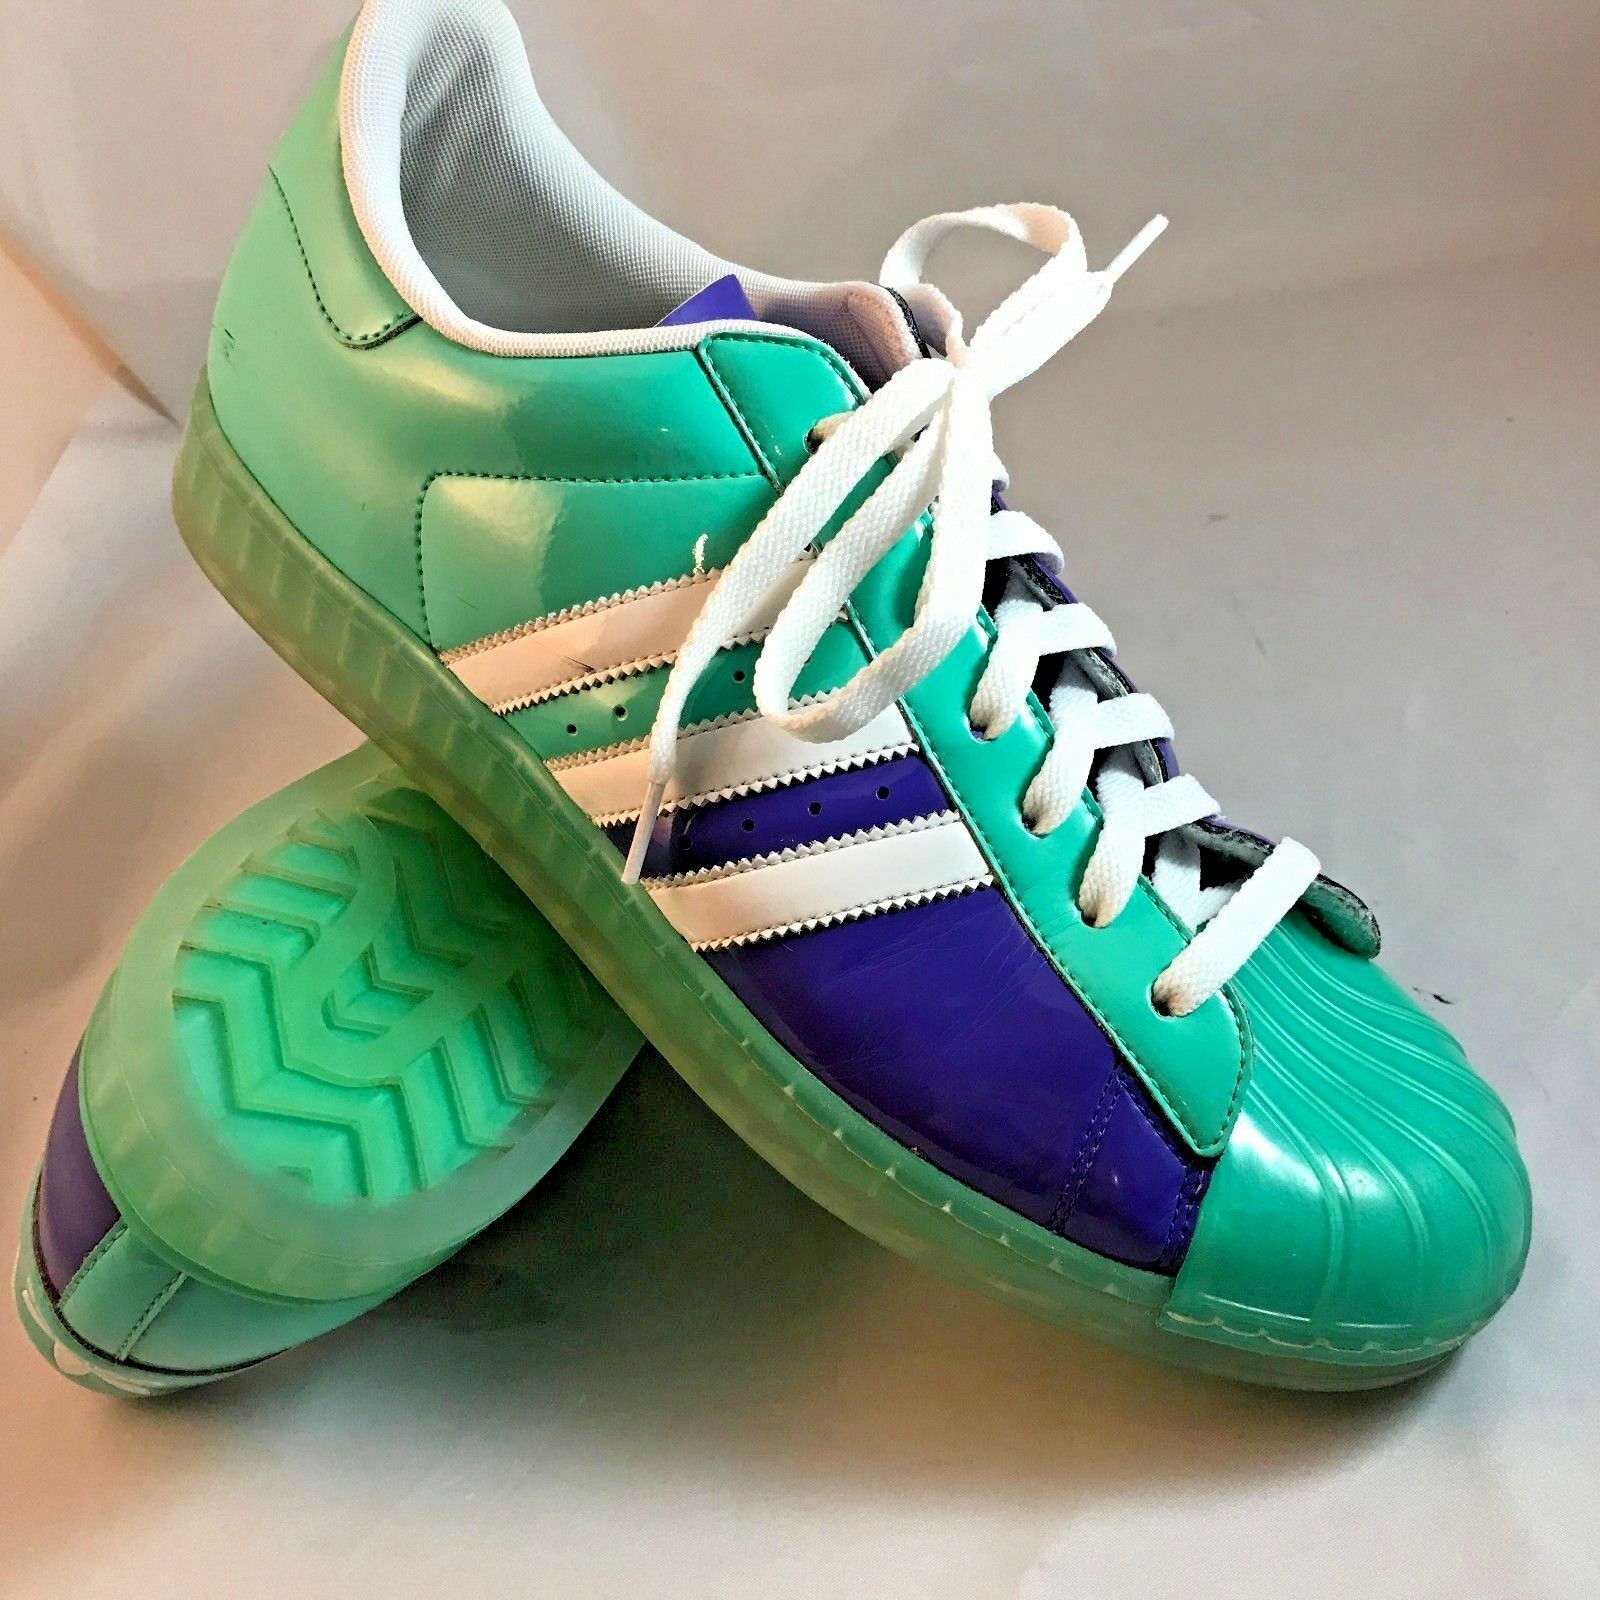 Adidas Limited Edition Superstars soles Patent Leather Aquamarine Royal Clear soles Superstars 11 8f300b